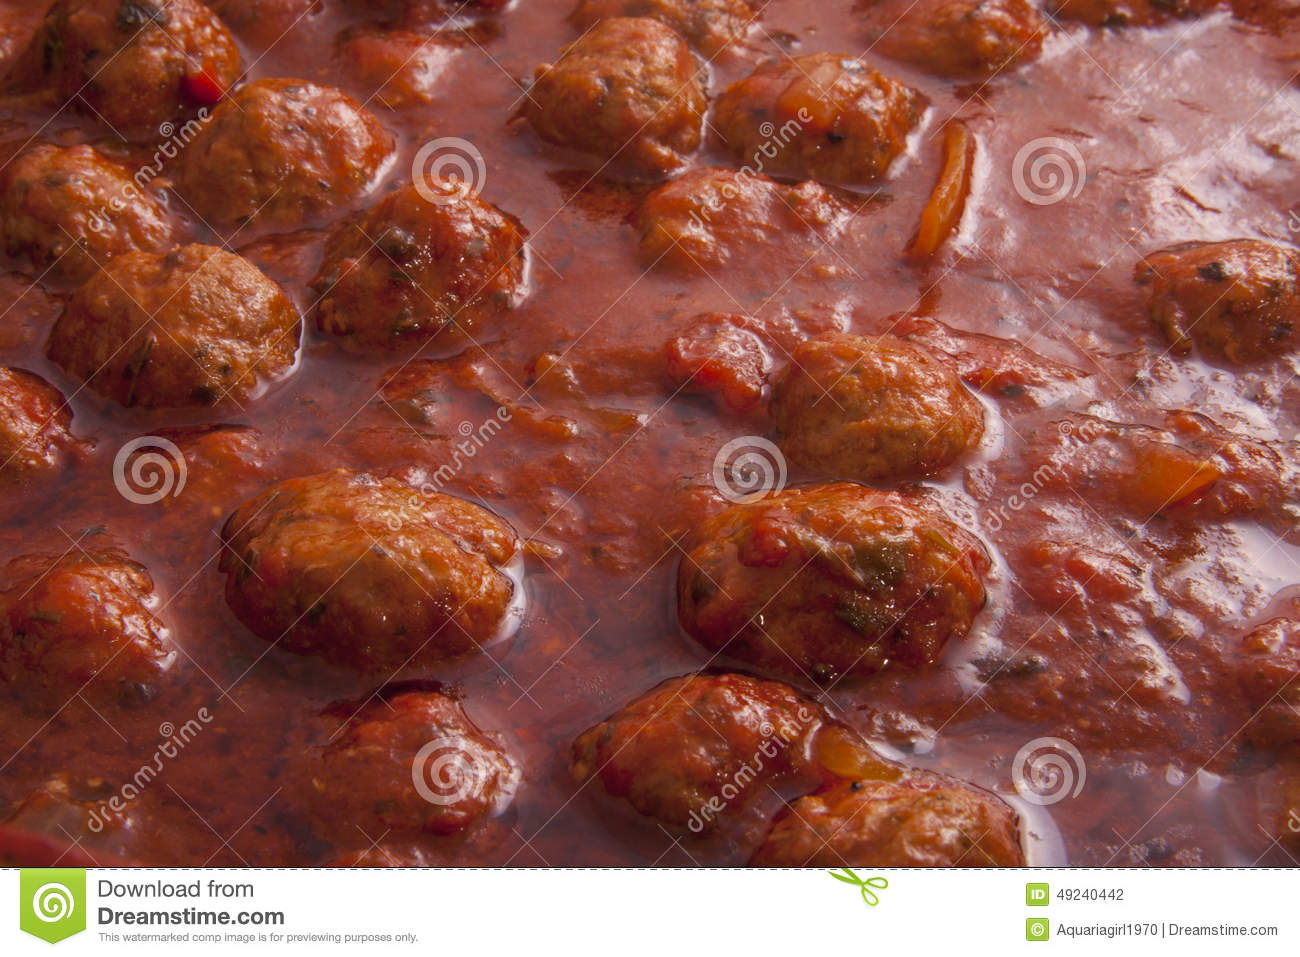 Italian pasta sauce with meatballs for background use.